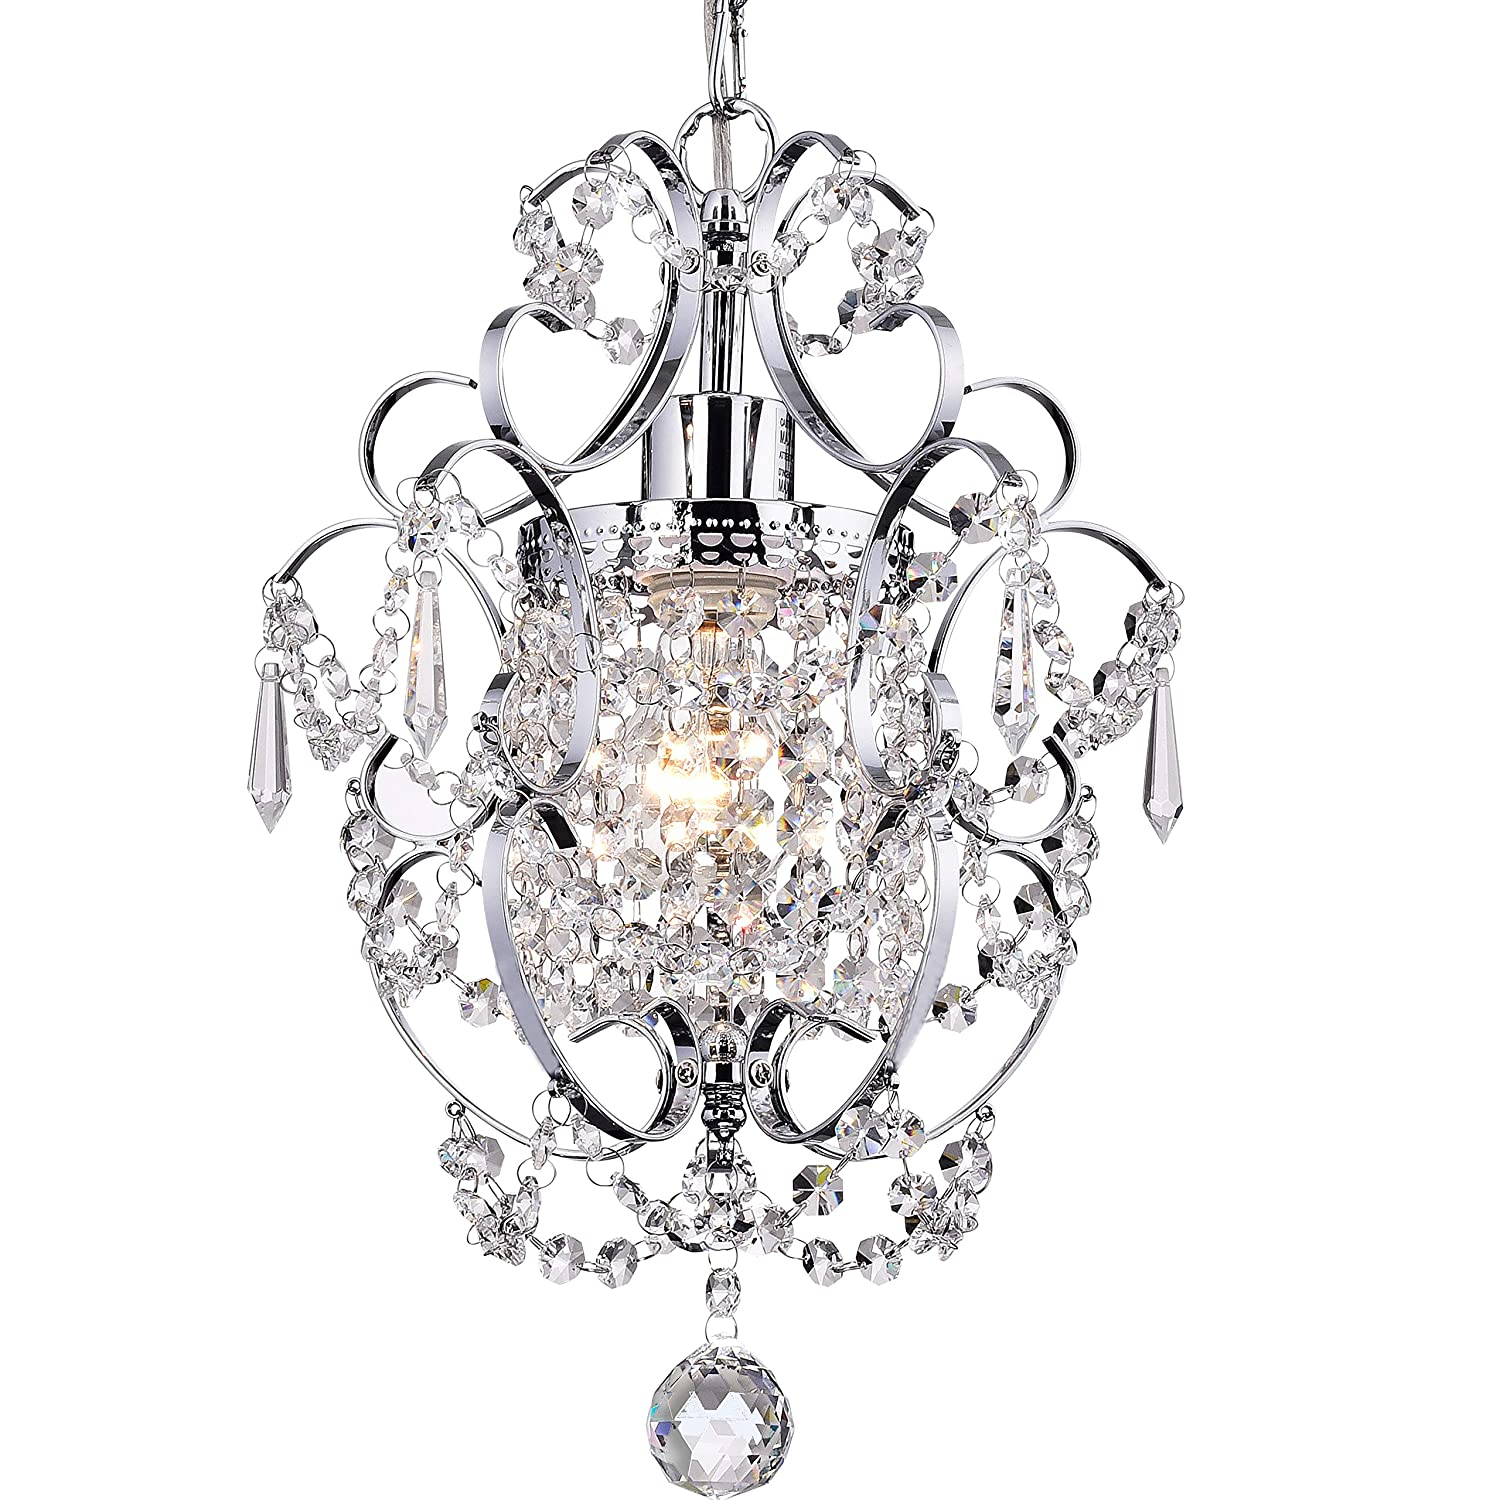 Crystal Mini Chandelier Lighting 1 Light Chrome Chandeliers Iron Ceiling Light Fixture